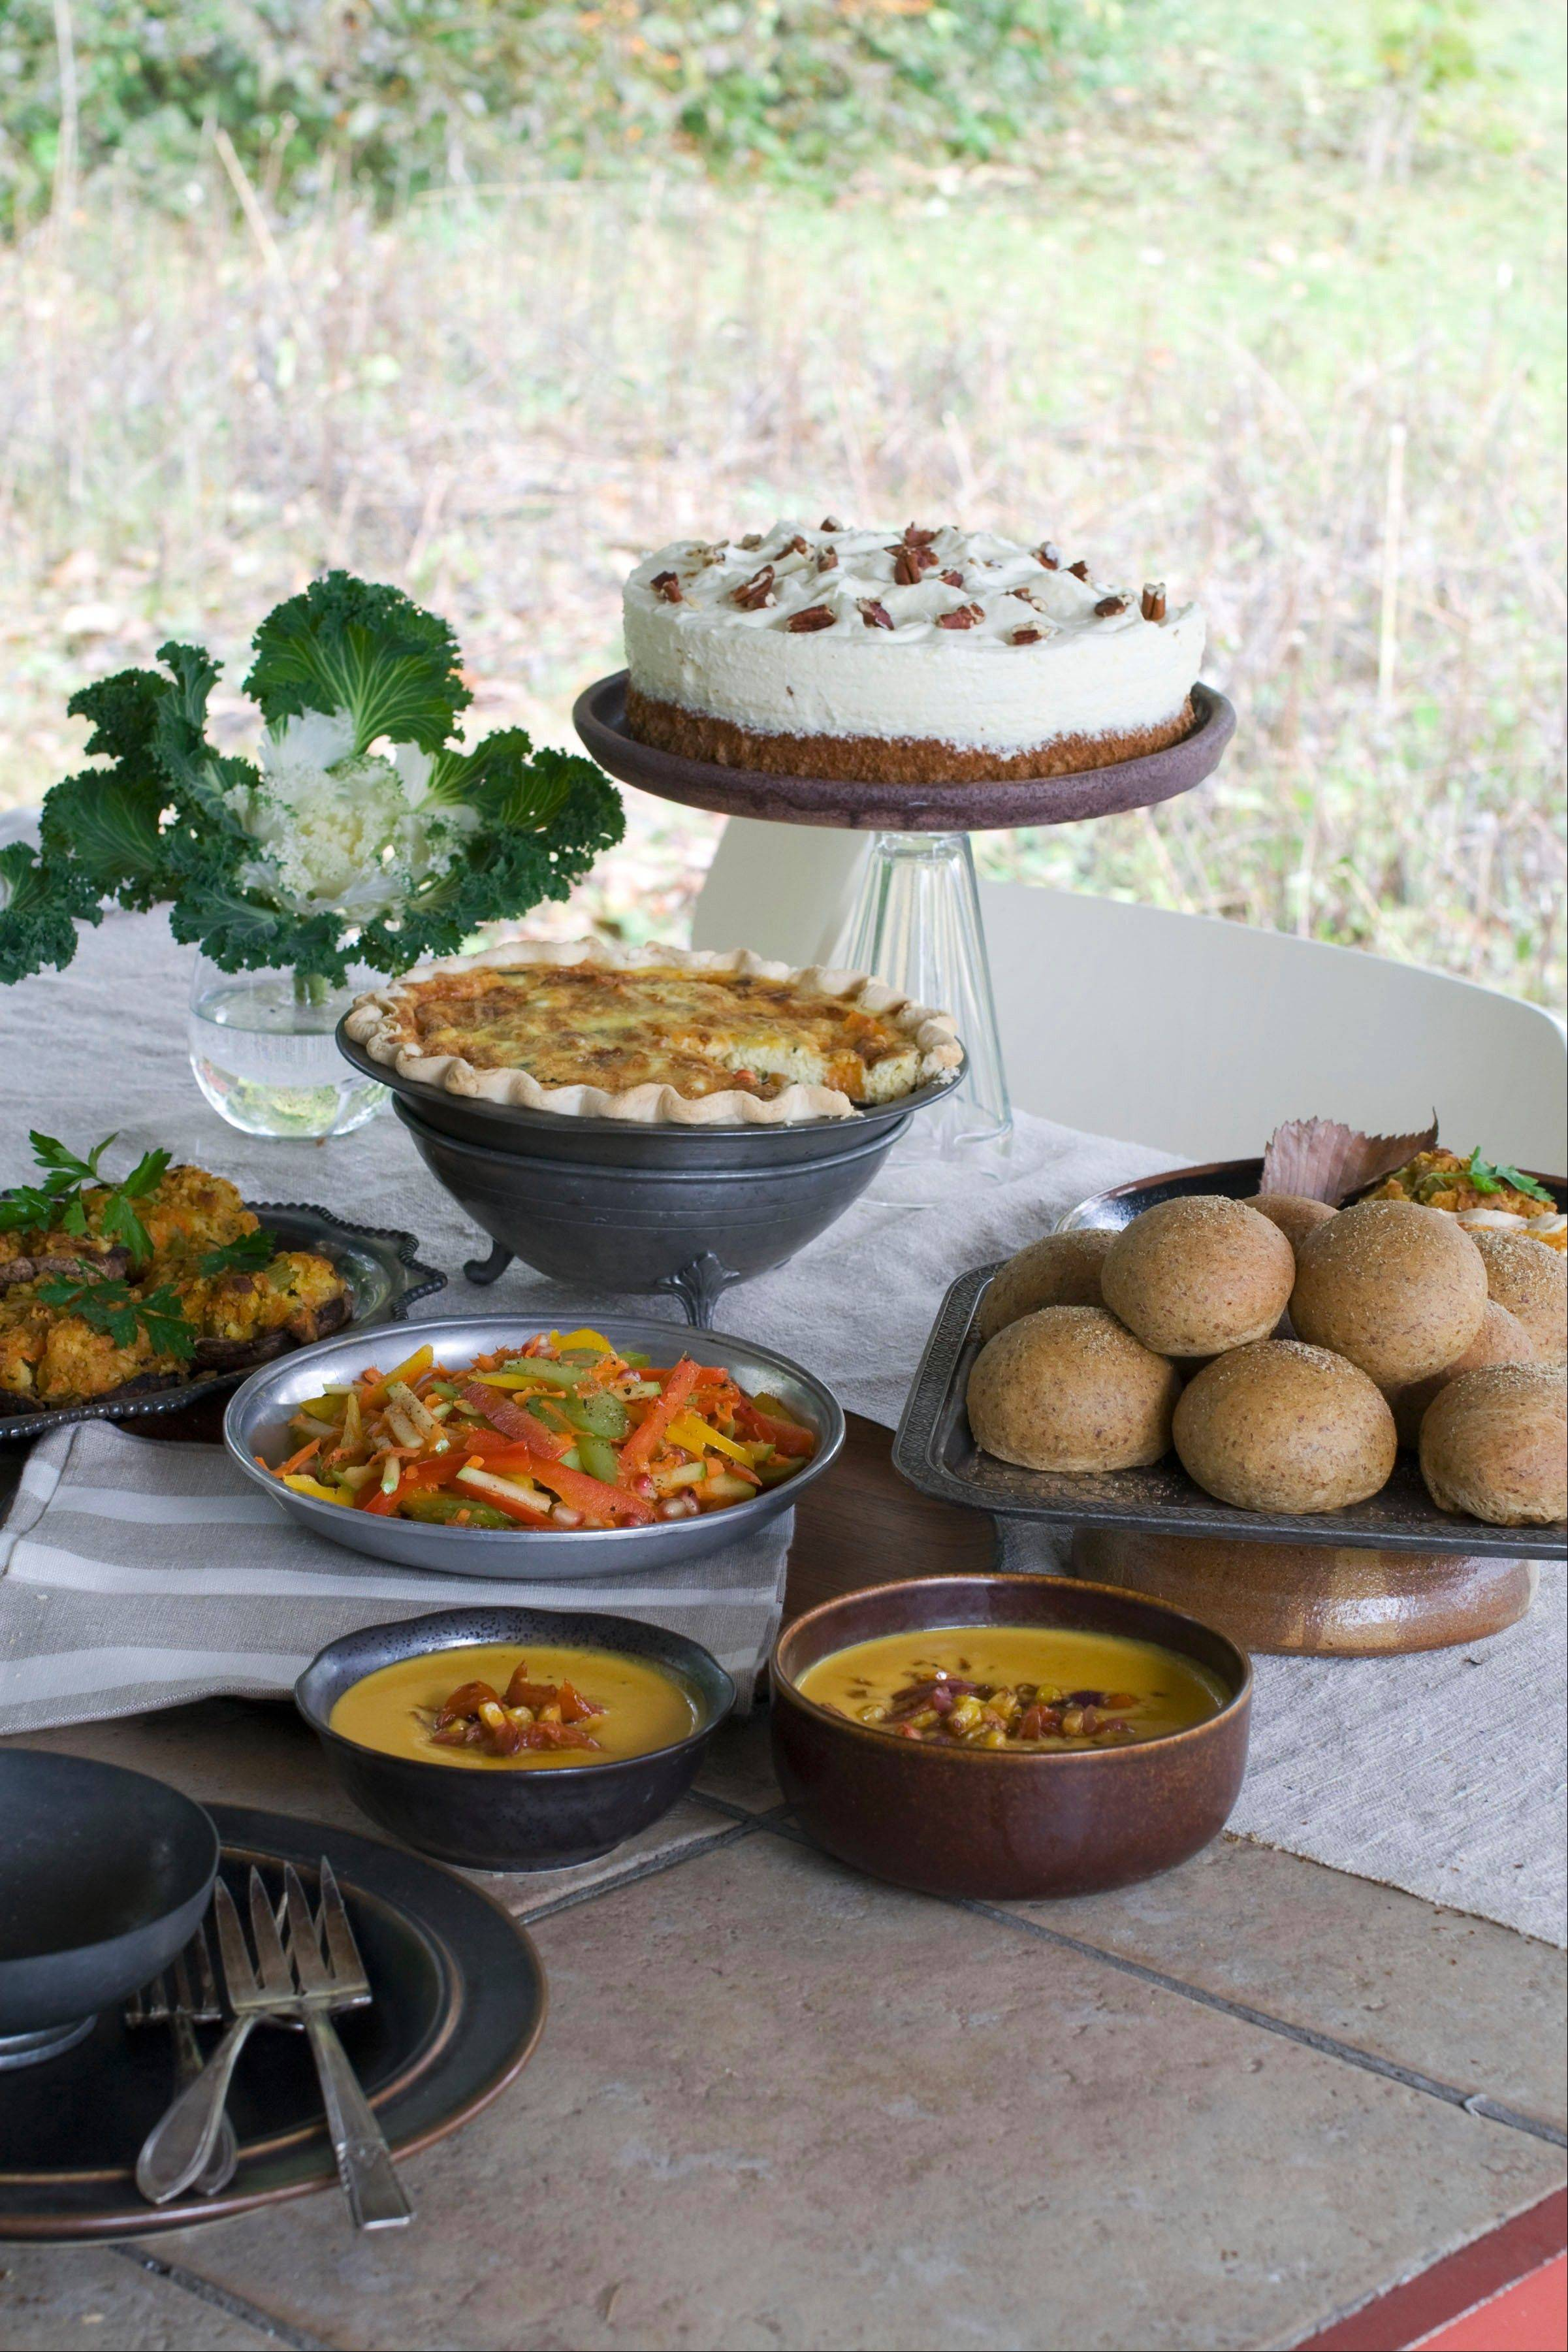 You won't miss turkey with hearty fare like red bell pepper and apple slaw, flax rolls, roasted vegetable quiche, corn bread stuffing mushrooms and squash bisque and lemon pecan mousse cake on the Thanksgiving table.